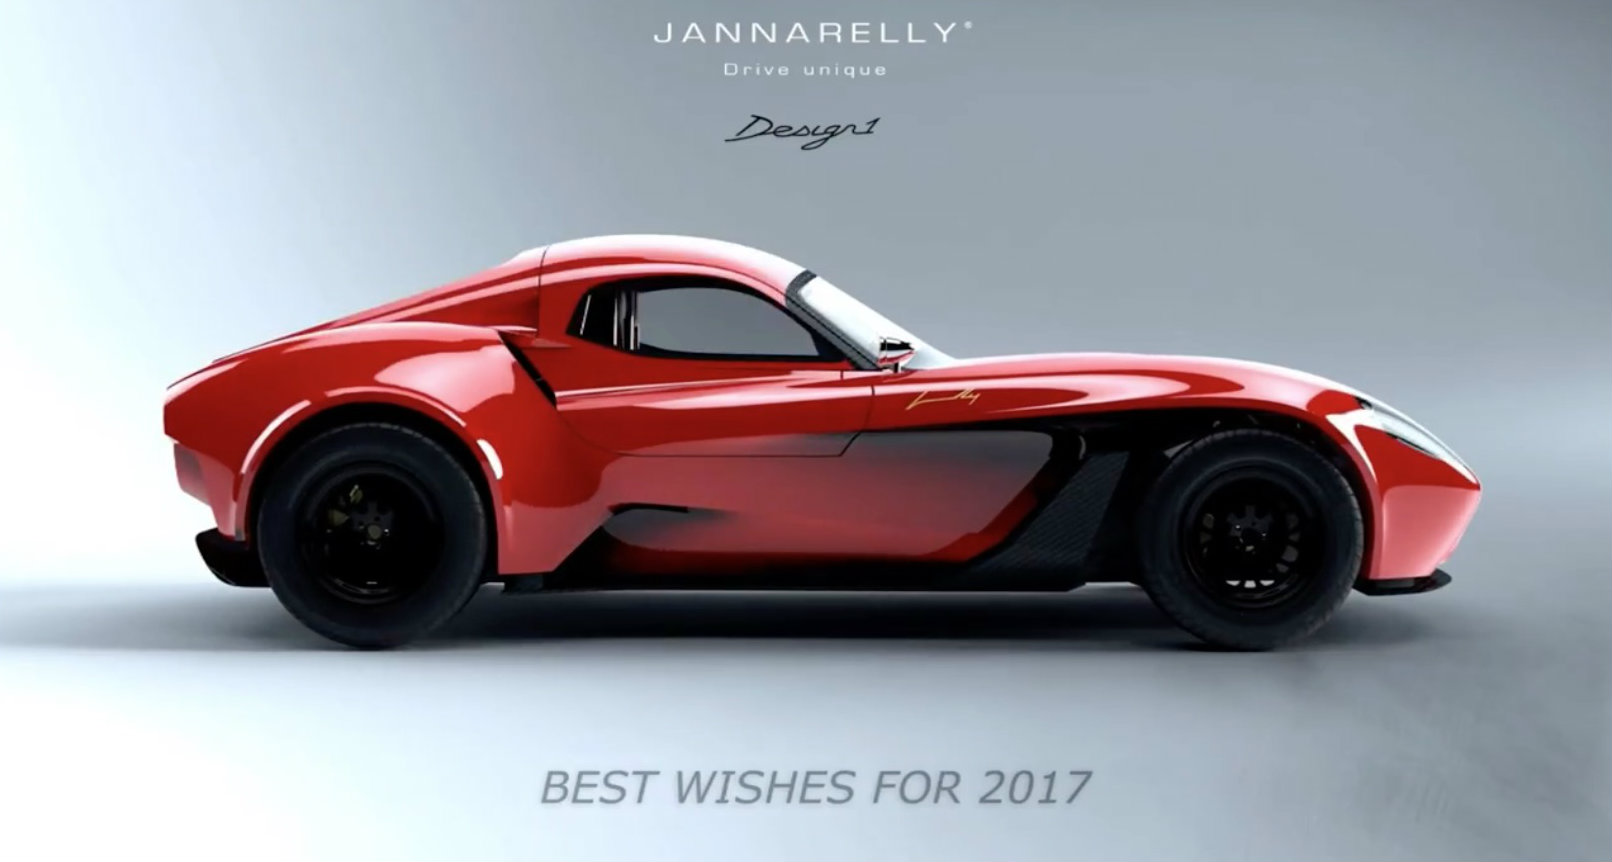 Carbon Fiber Targa Top In The Offing For Jannarelly Design 1